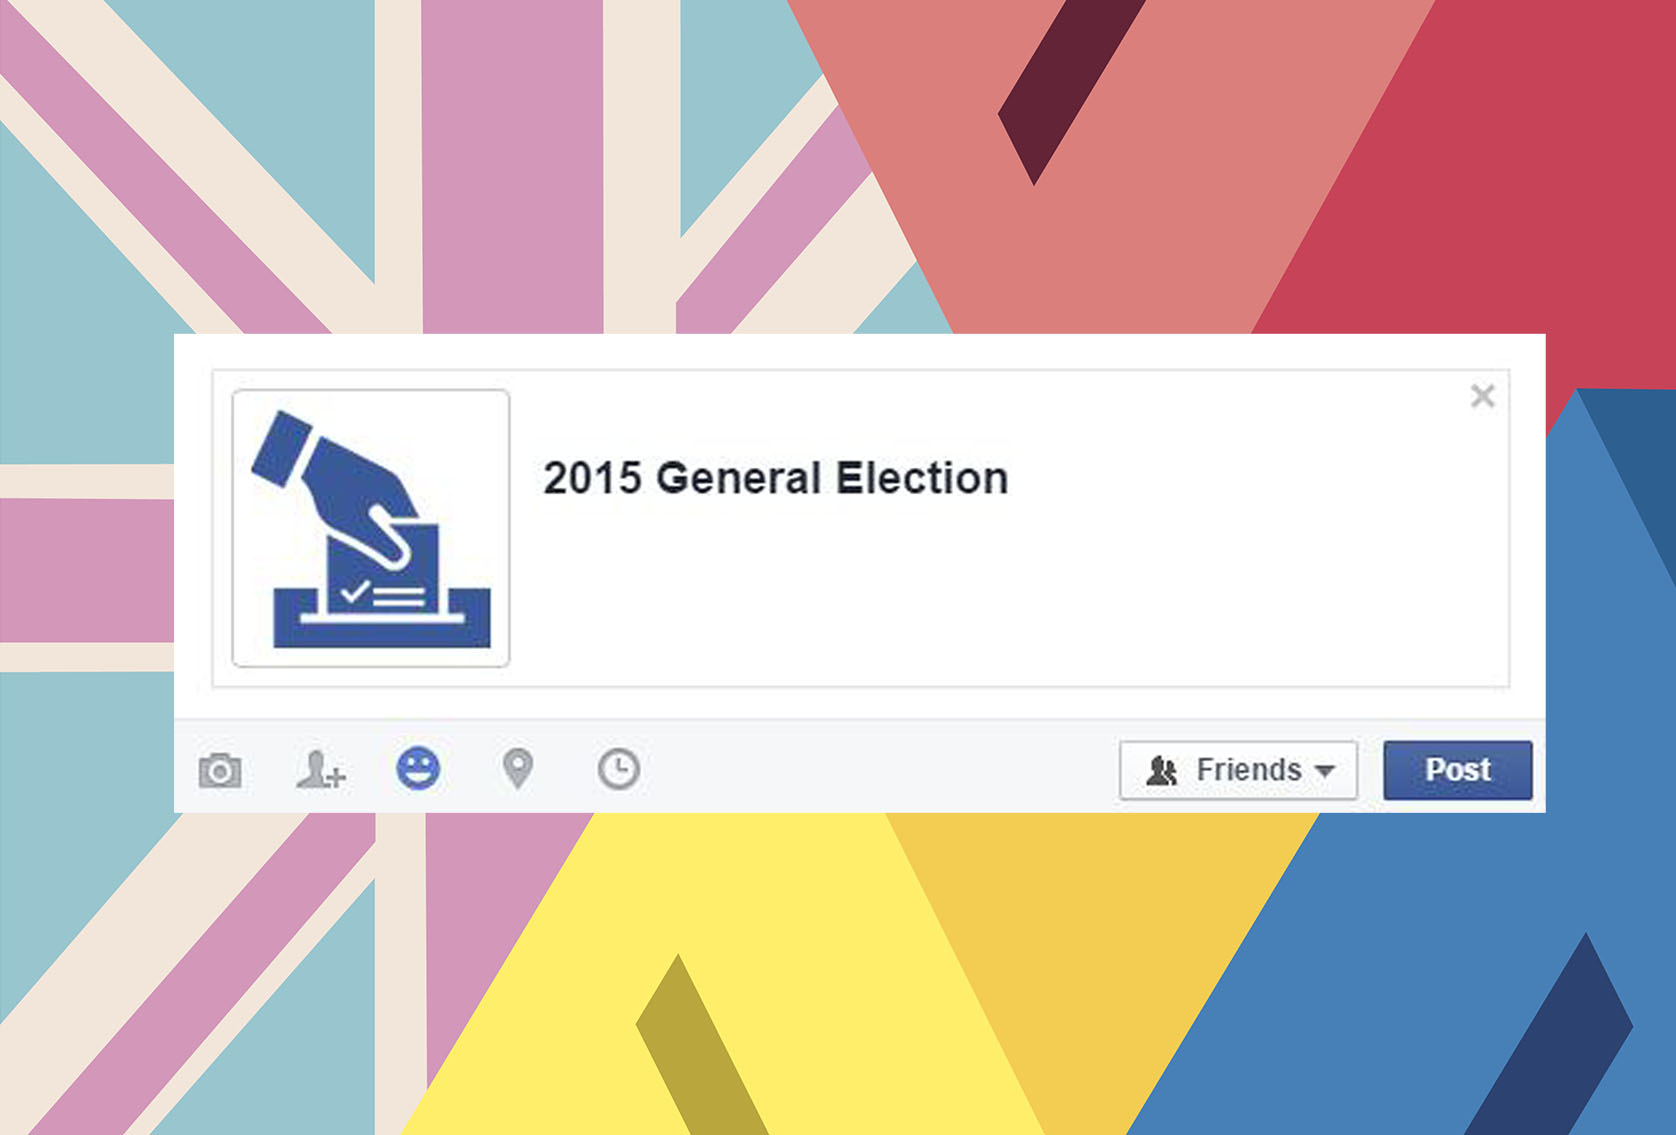 How much is Facebook's voting button annoying you right now